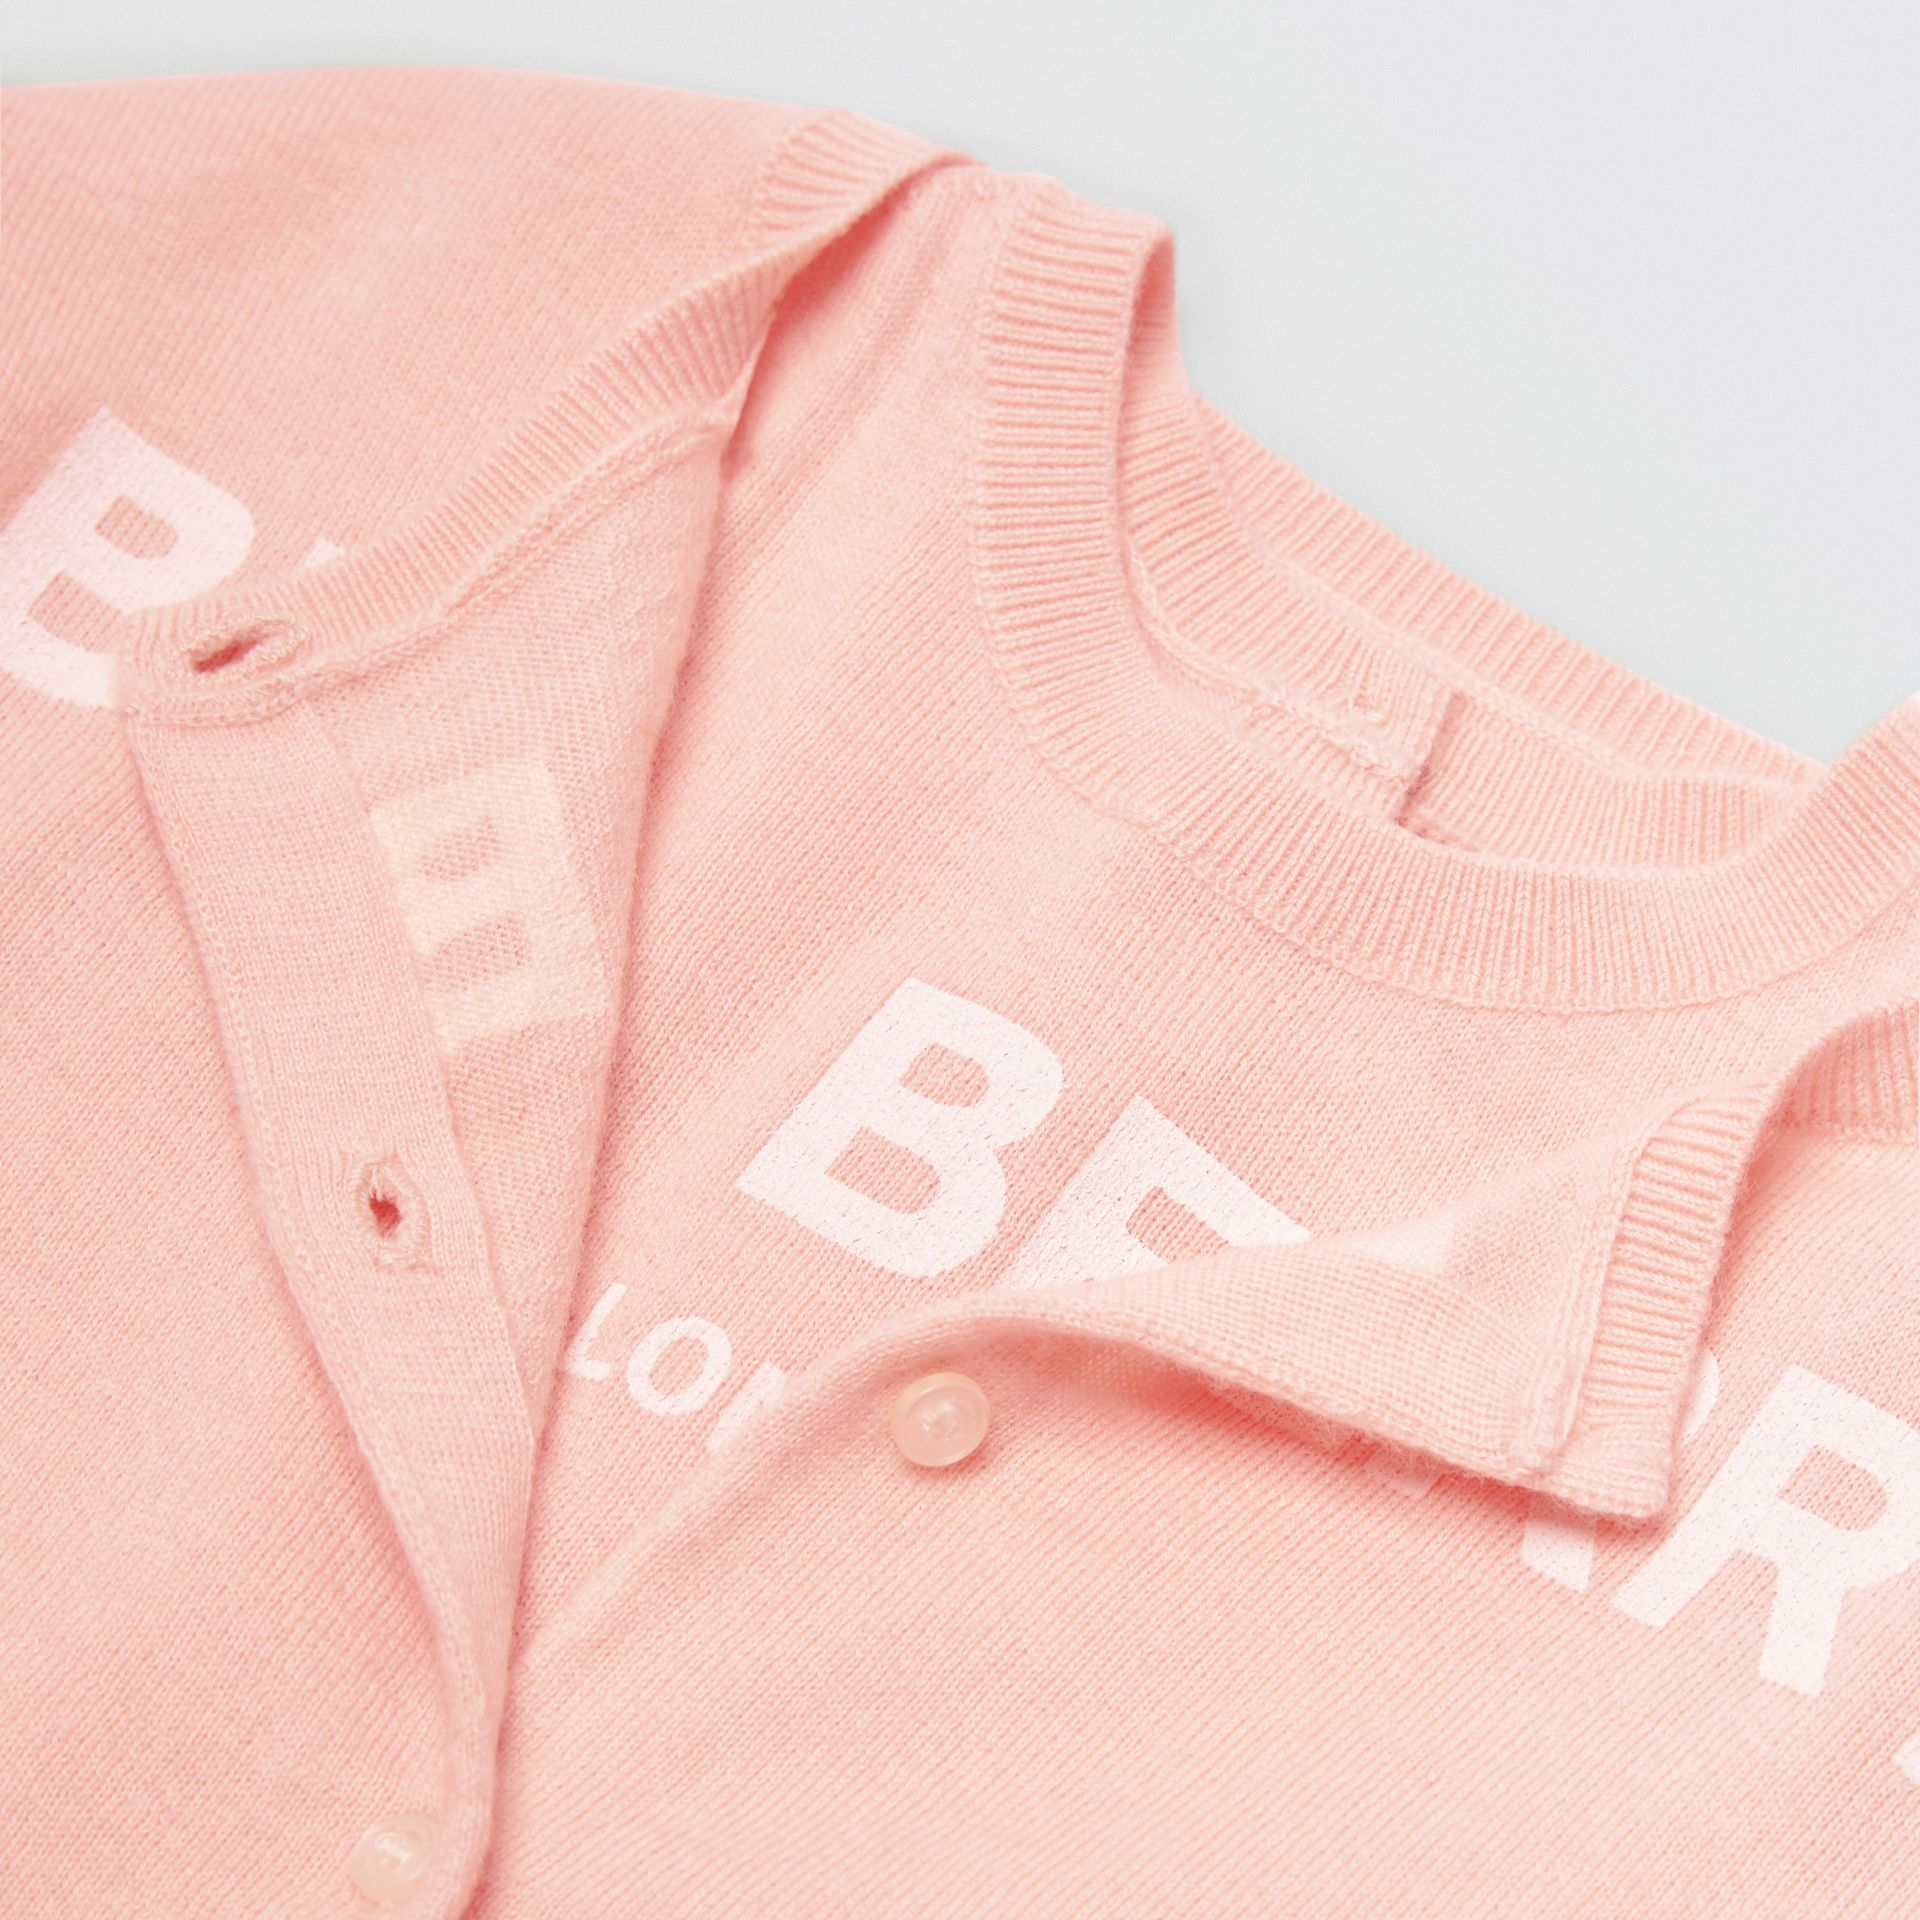 Logo Print Cashmere Two-piece Set in Pale Rose Pink - Children | Burberry - gallery image 1